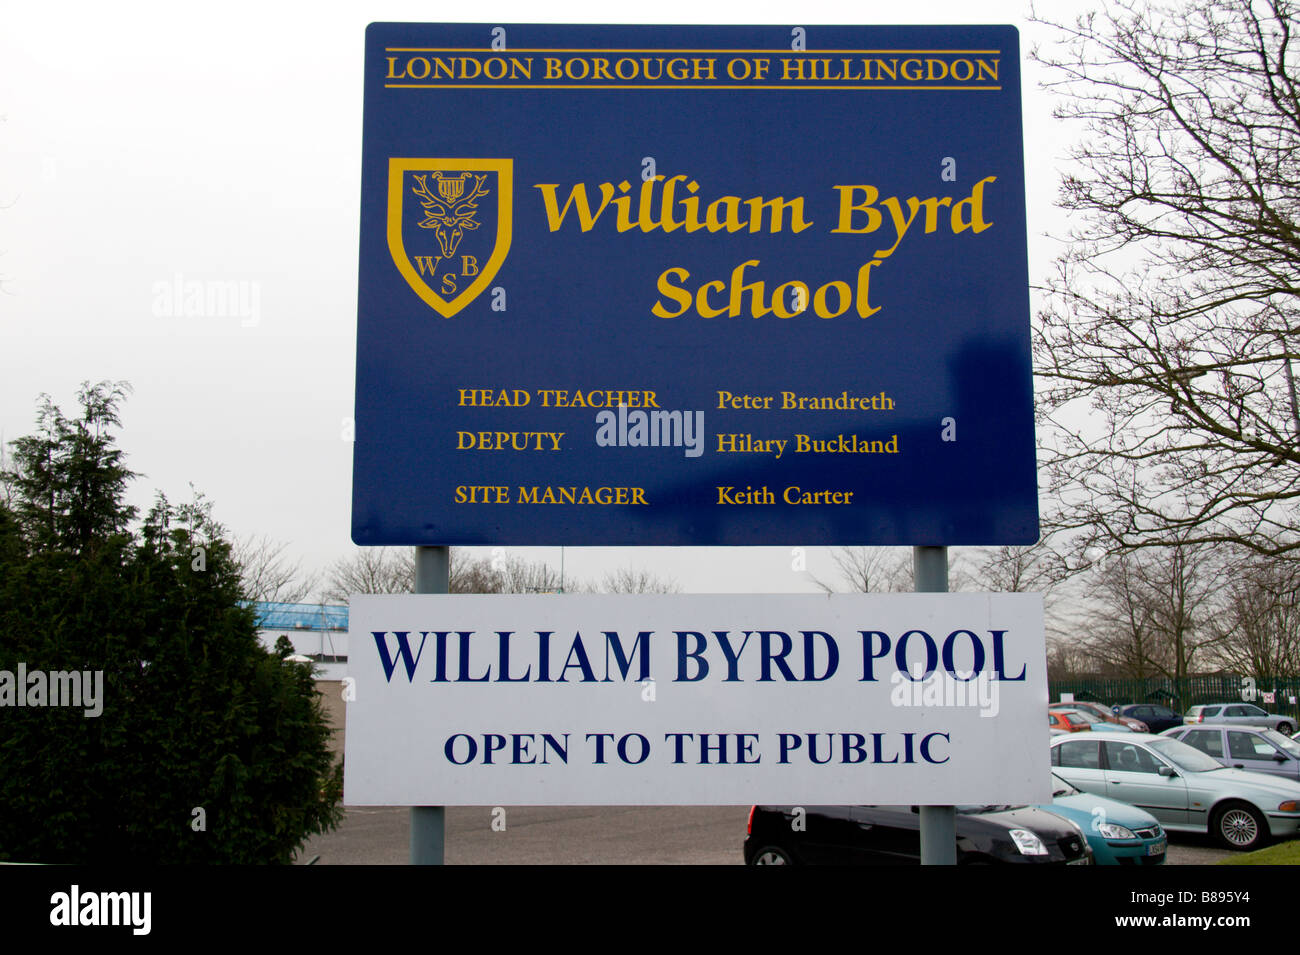 The William Byrd School, which will be directly below the flight path of Heathrow's proposed third runway. - Stock Image